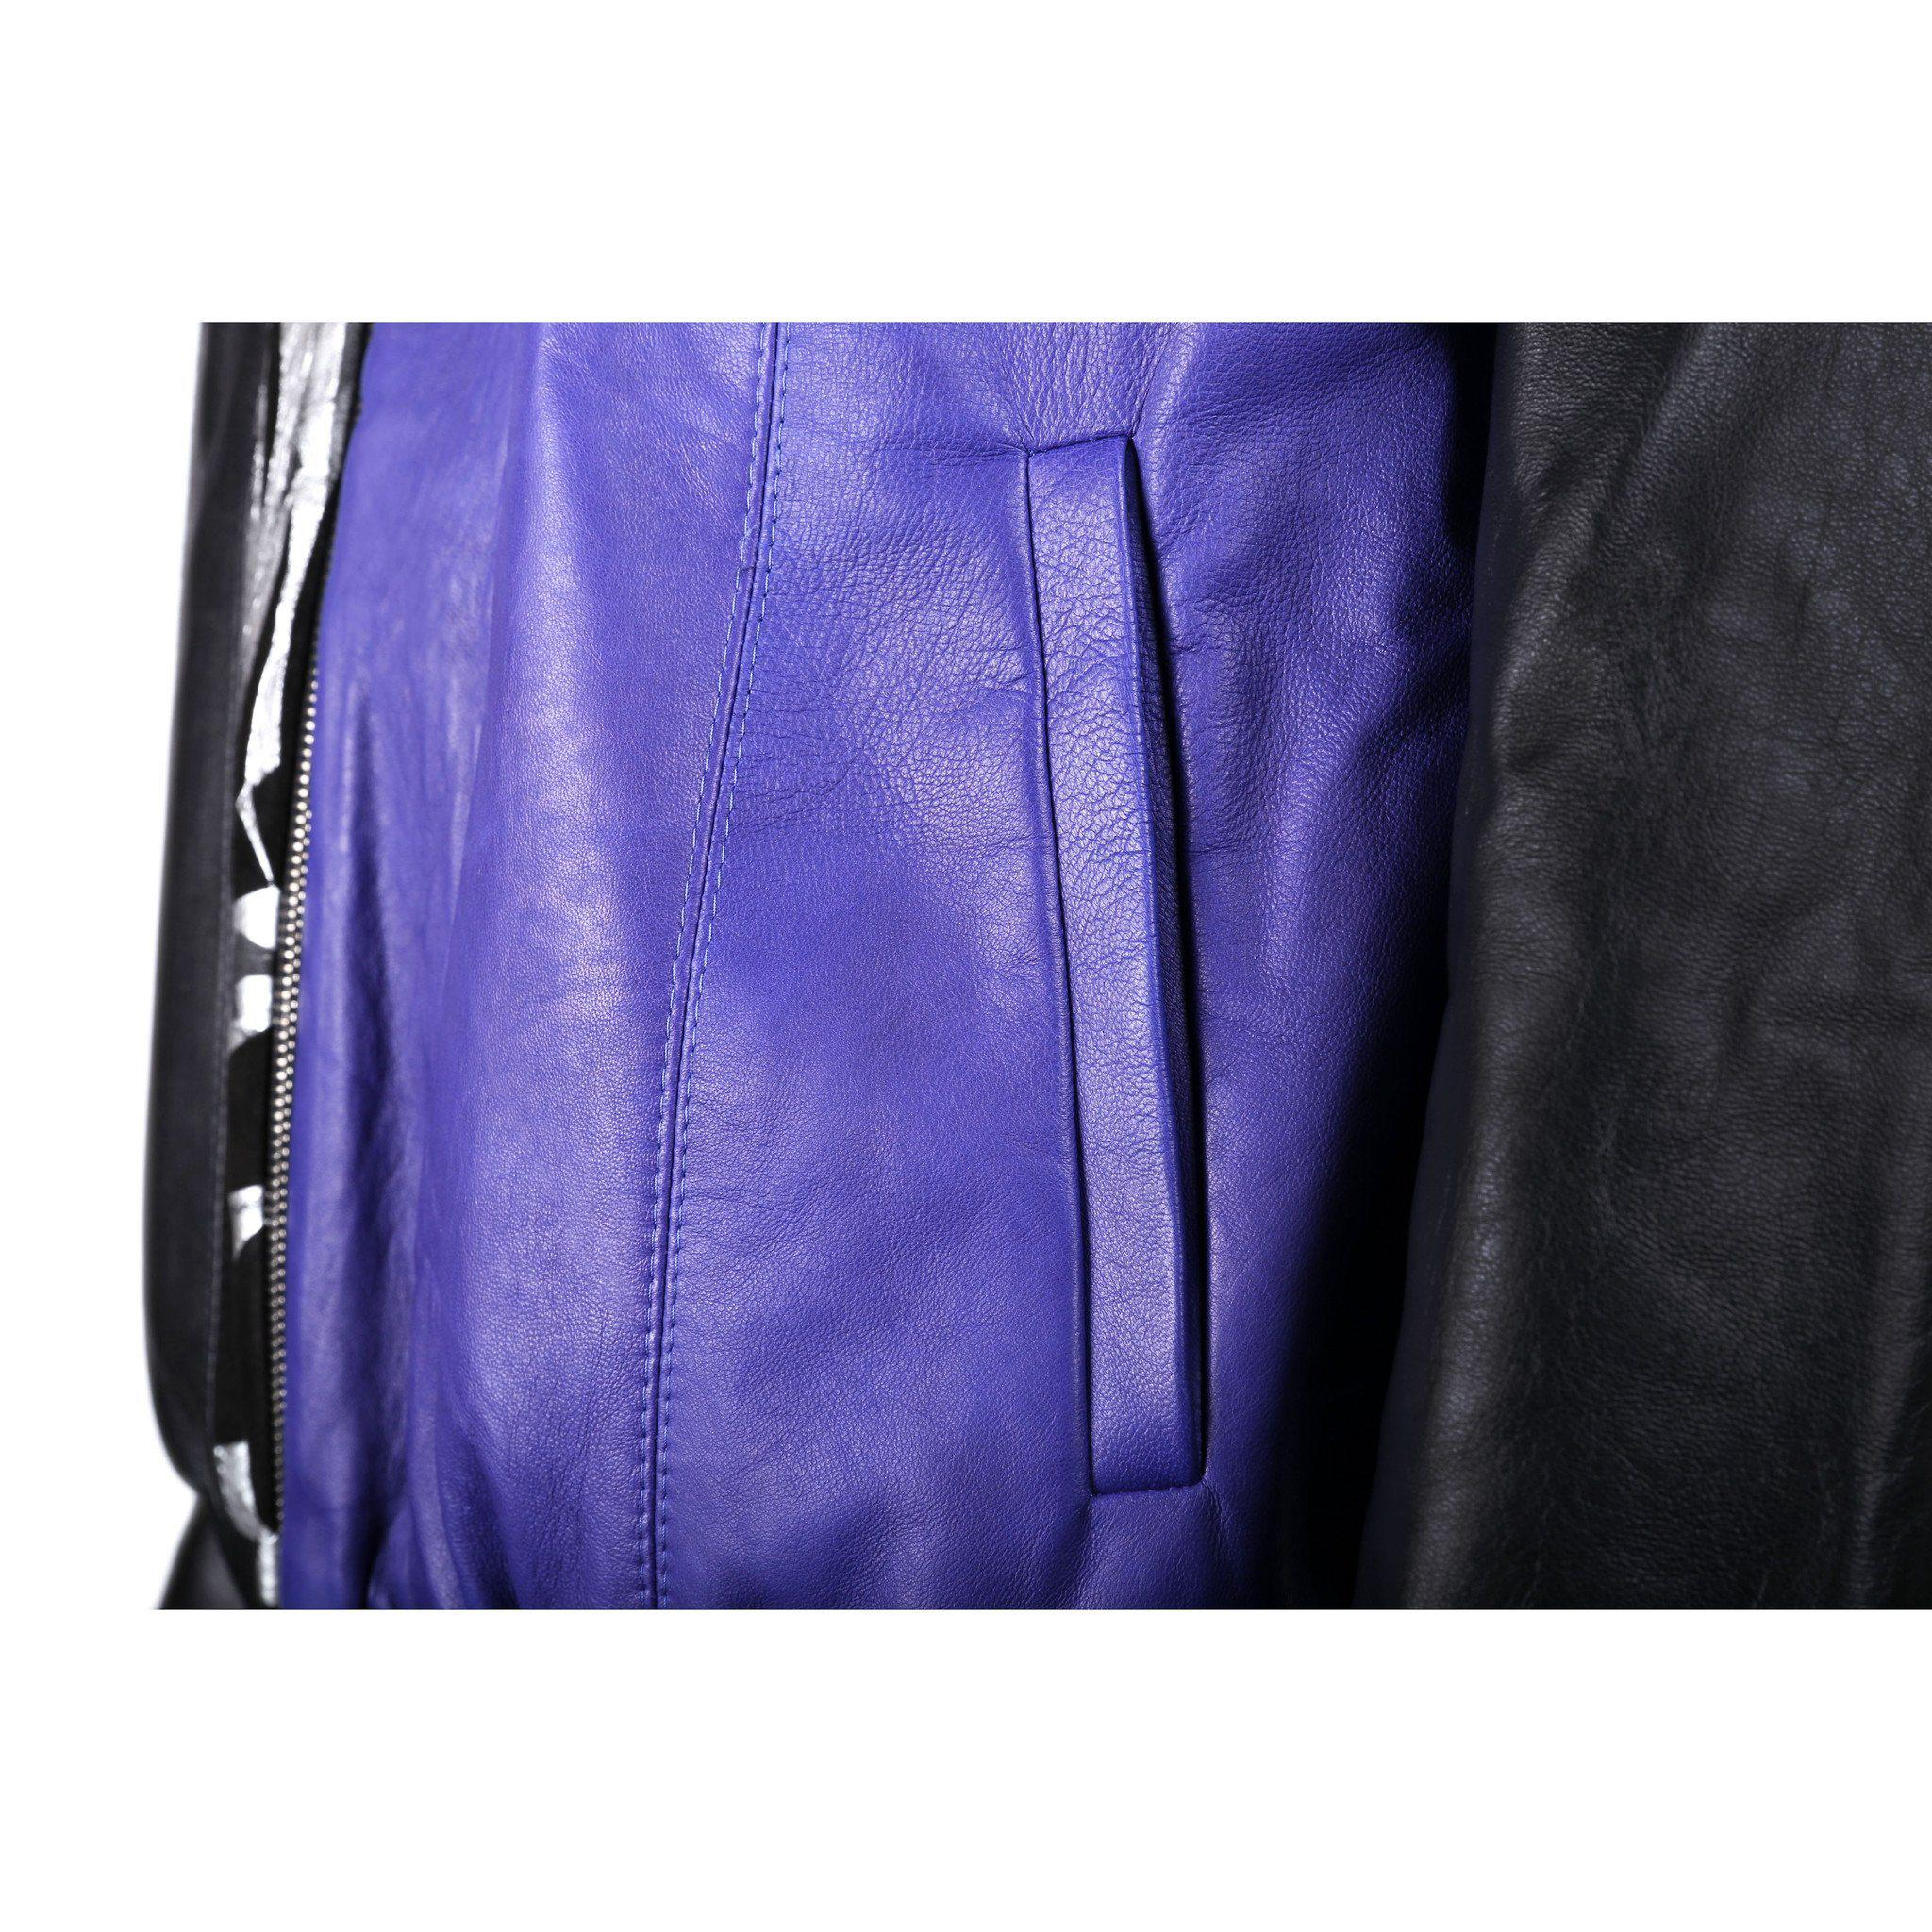 Black and Purple Leather Bomber Jacket with Silver Print Motif 2